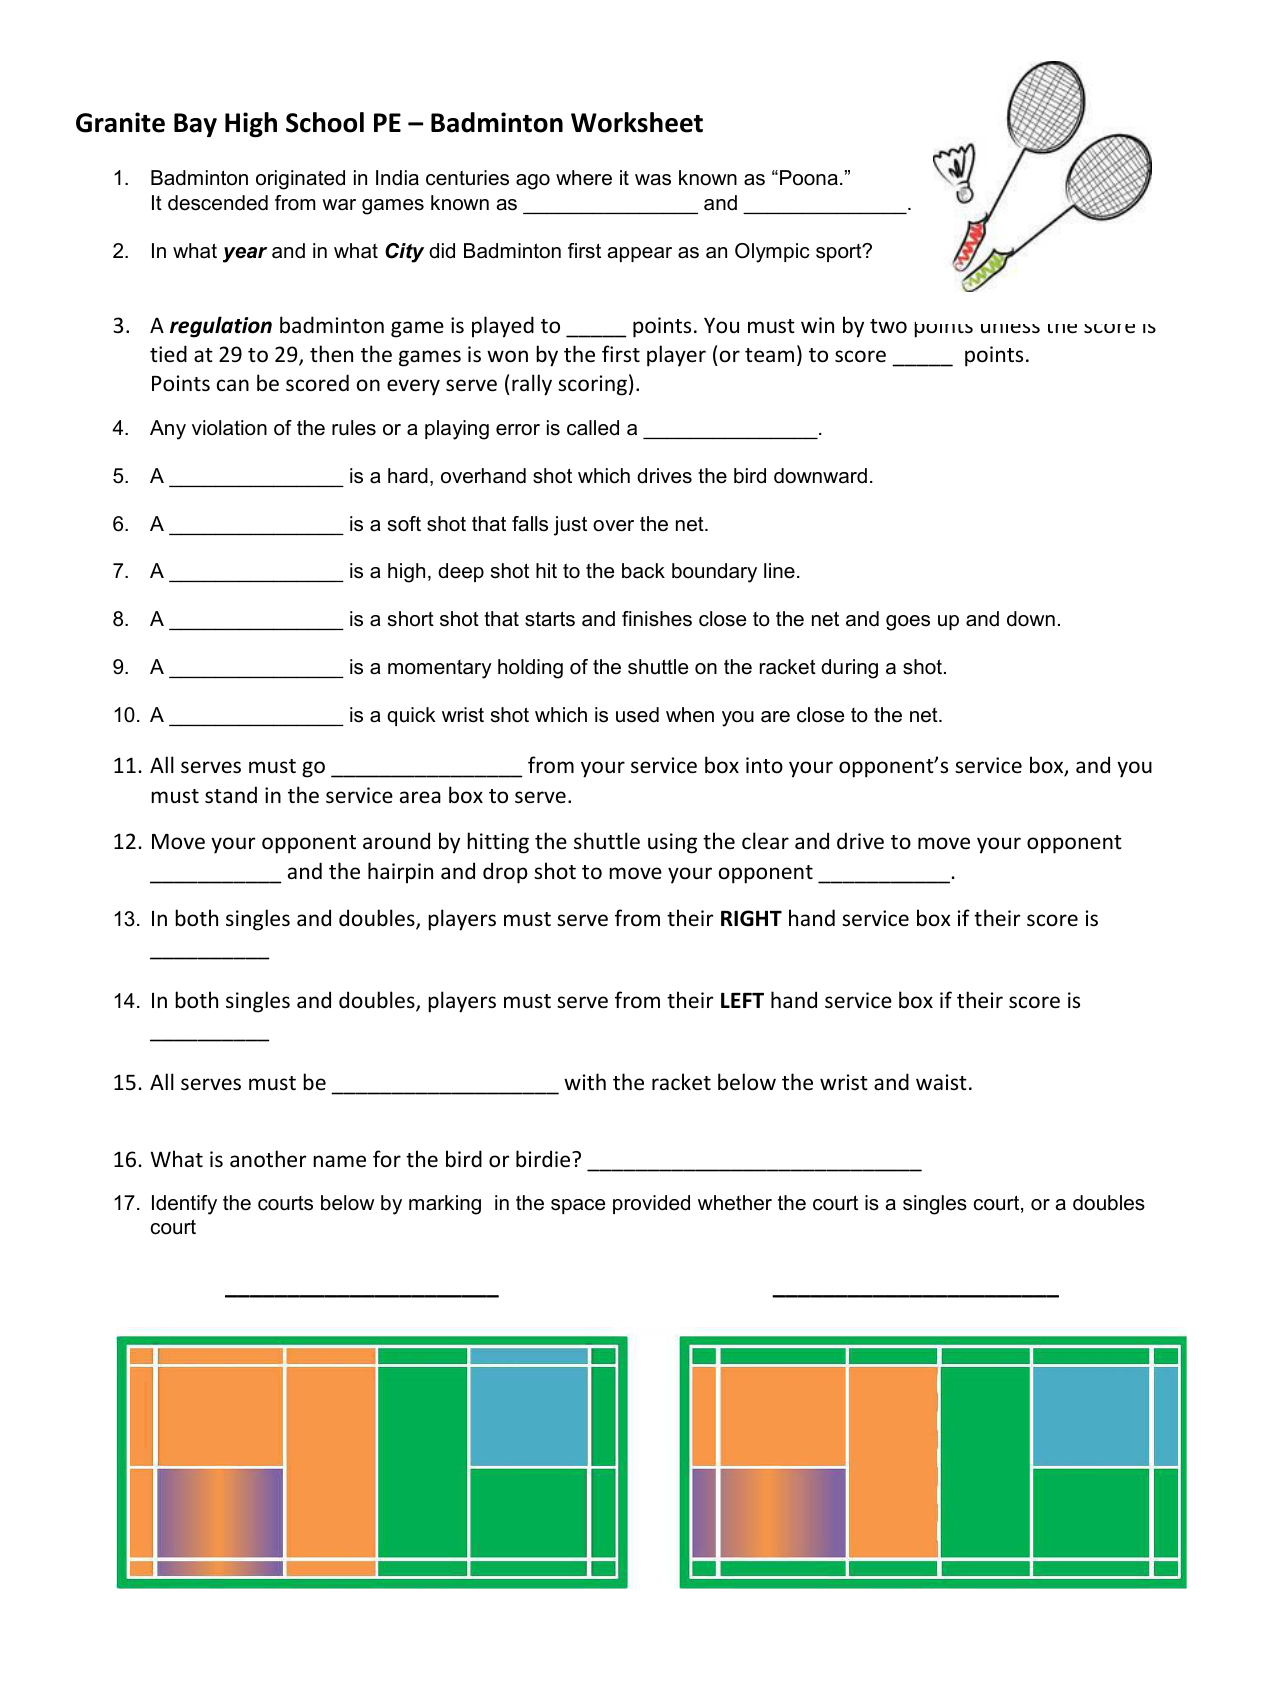 Granite Bay High School Pe Badminton Worksheet